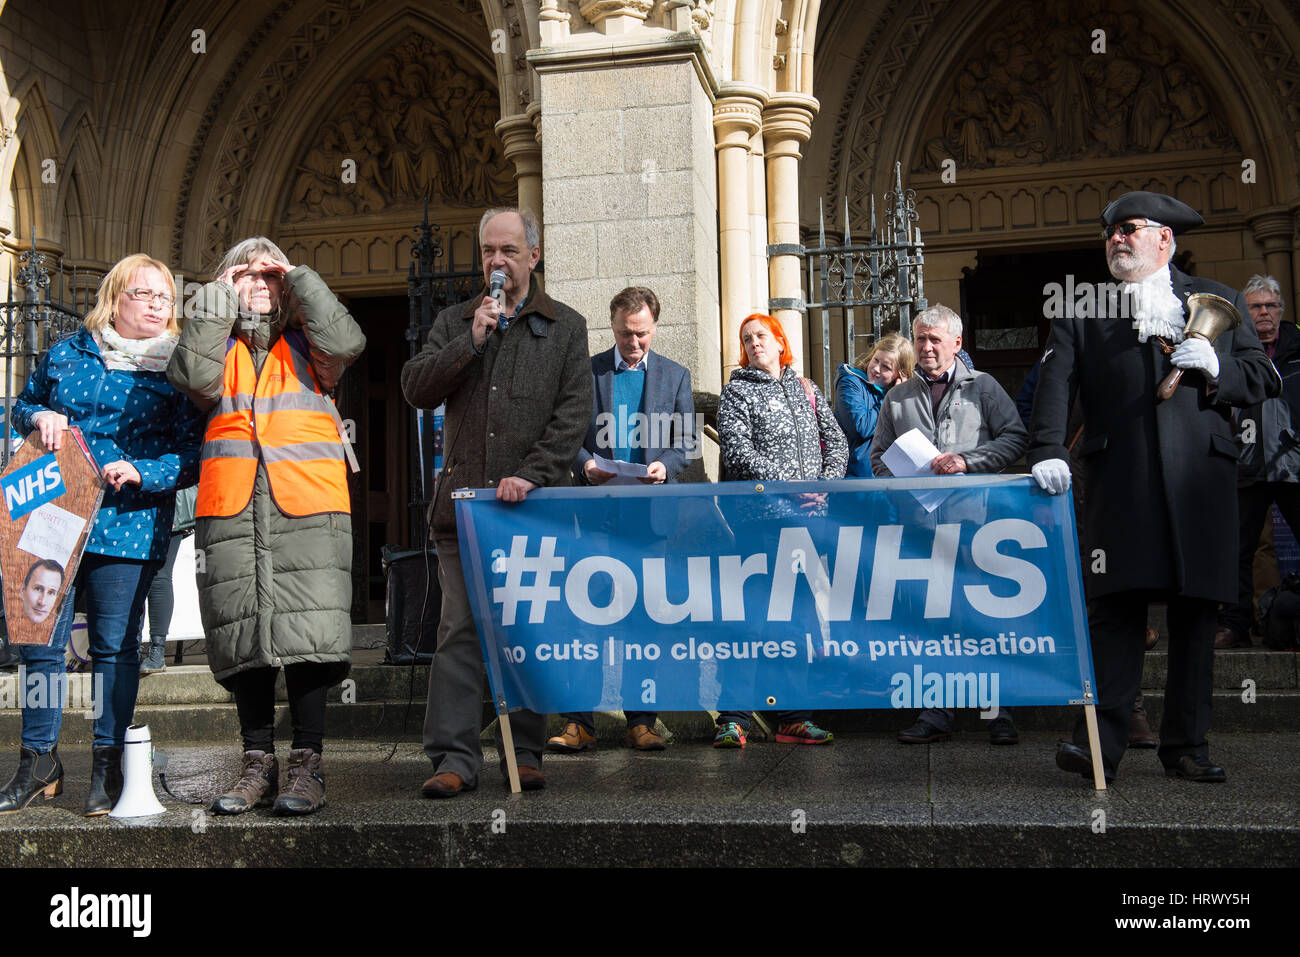 Truro, Cornwall, UK. 4th Mar, 2017. Stuart Roden, Labour Parliamentary Candidate for Falmouth and Truro, speaks - Stock Image